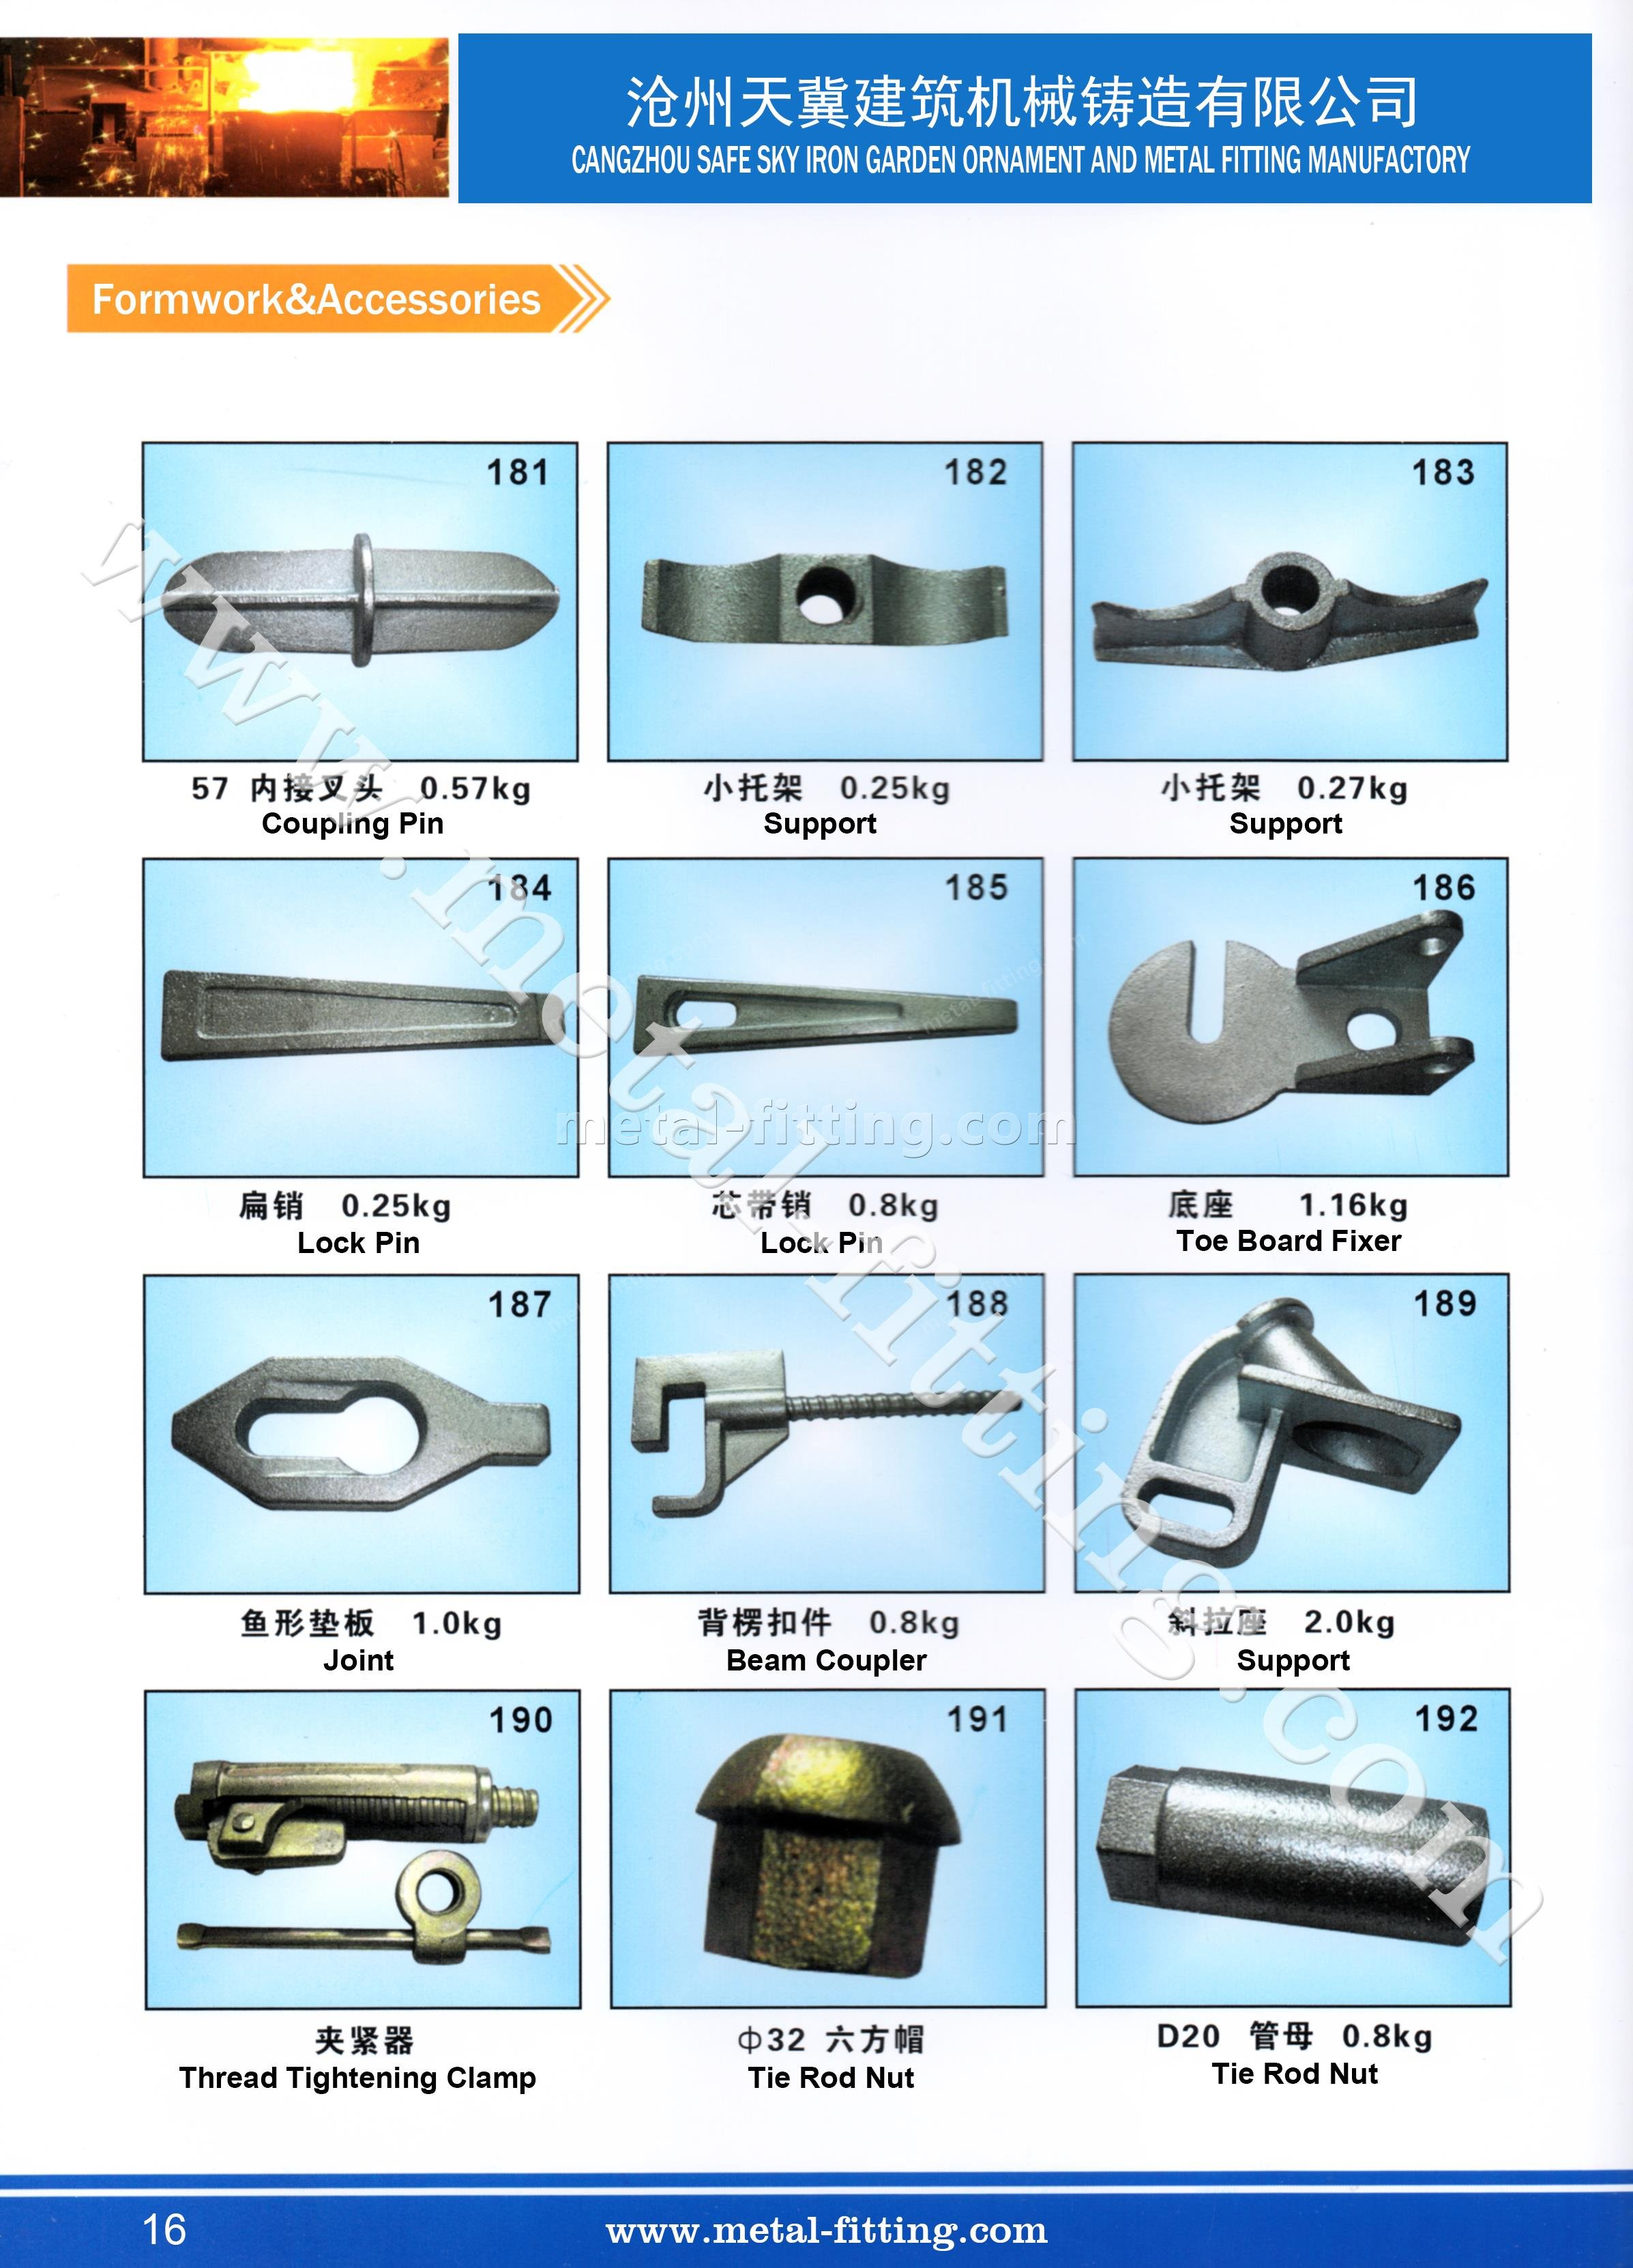 casting steel metal fitting, scaffolding system-16